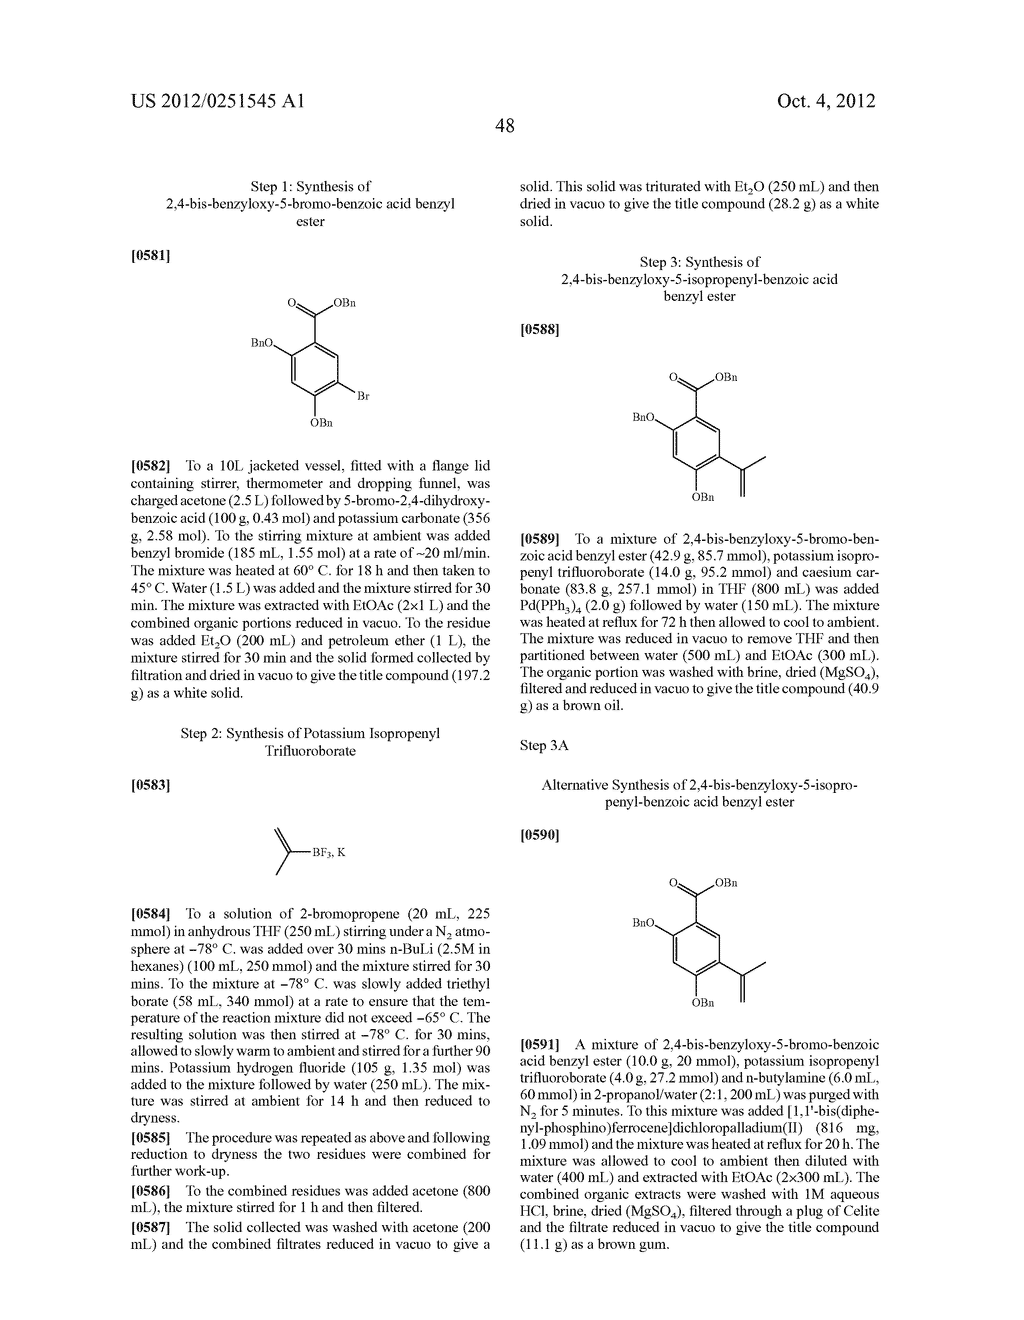 Therapeutic Combinations Of Hydroxybenzamide Derivatives As Inhibitors Of     HSP90 - diagram, schematic, and image 49